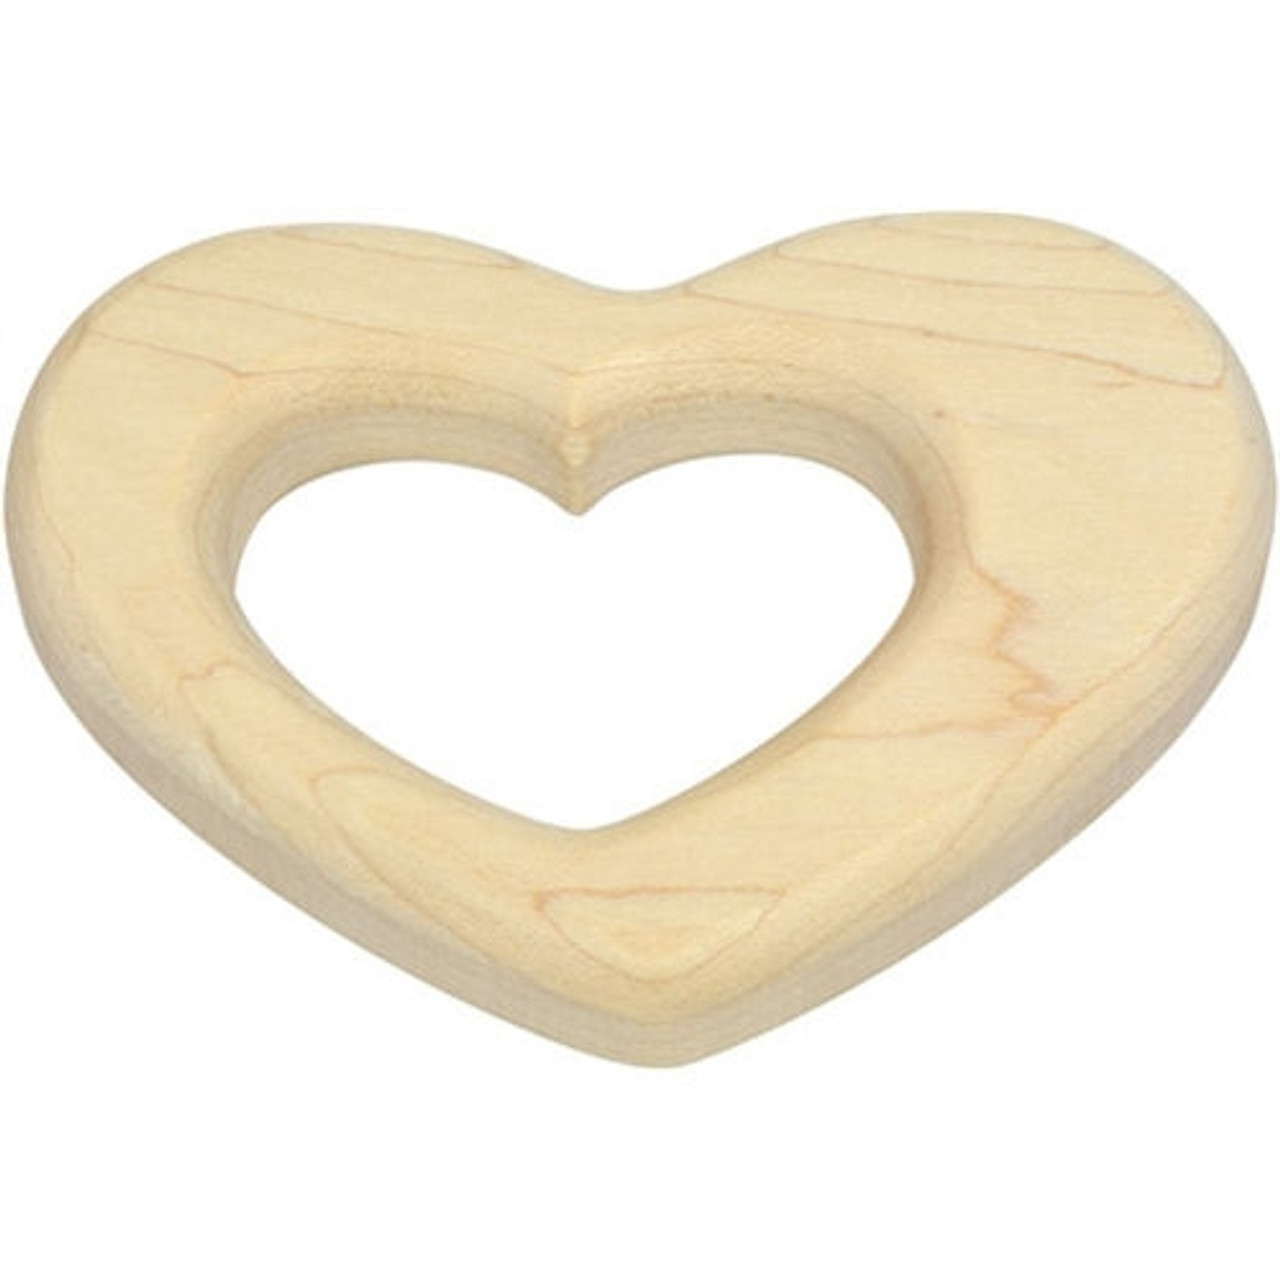 Wooden Baby Toys - Heart Teether